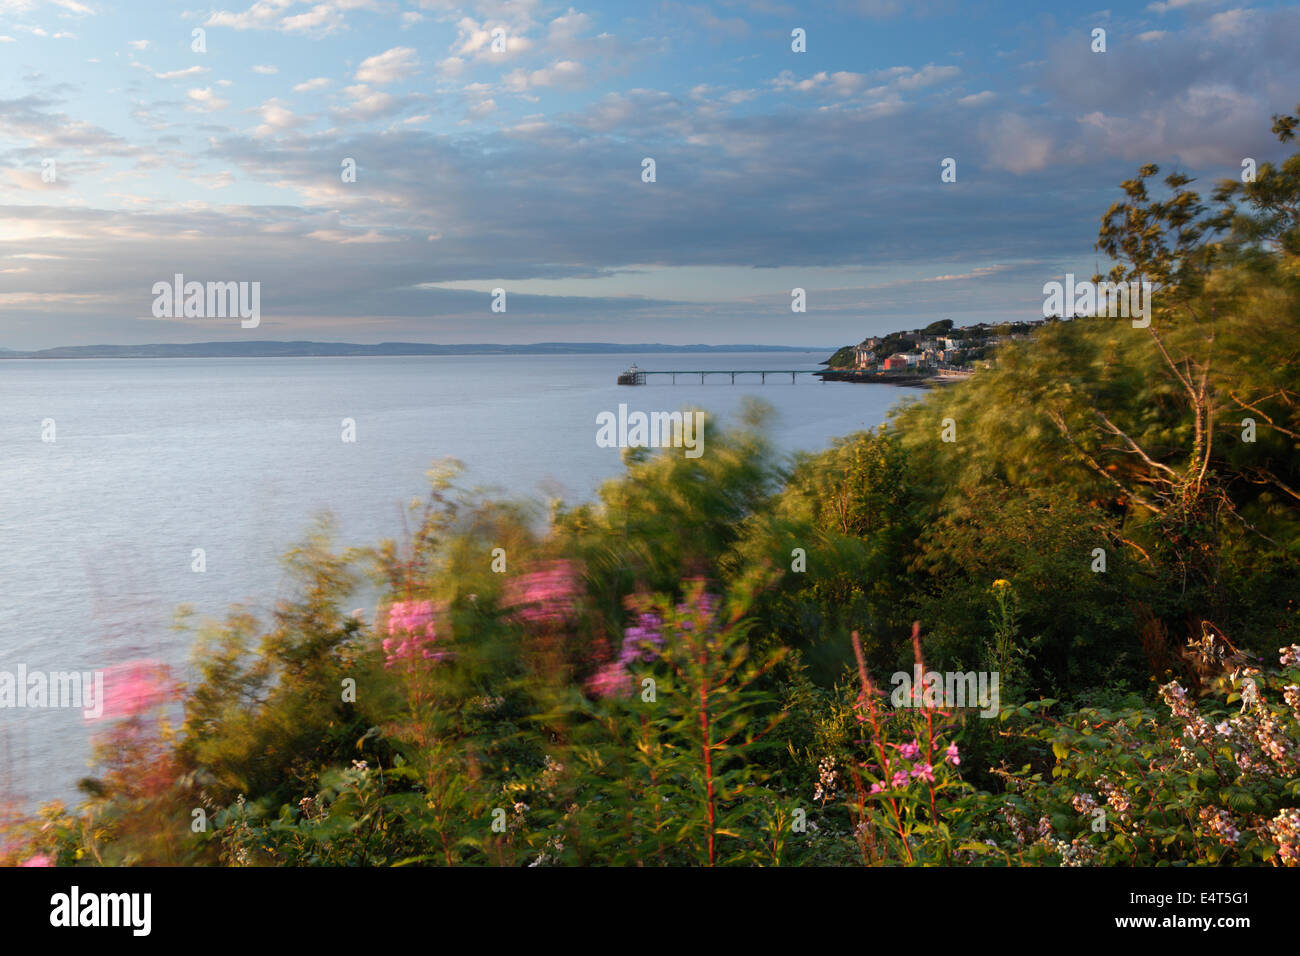 View from Poet's Walk, Clevedon. North Somerset, England, UK. - Stock Image